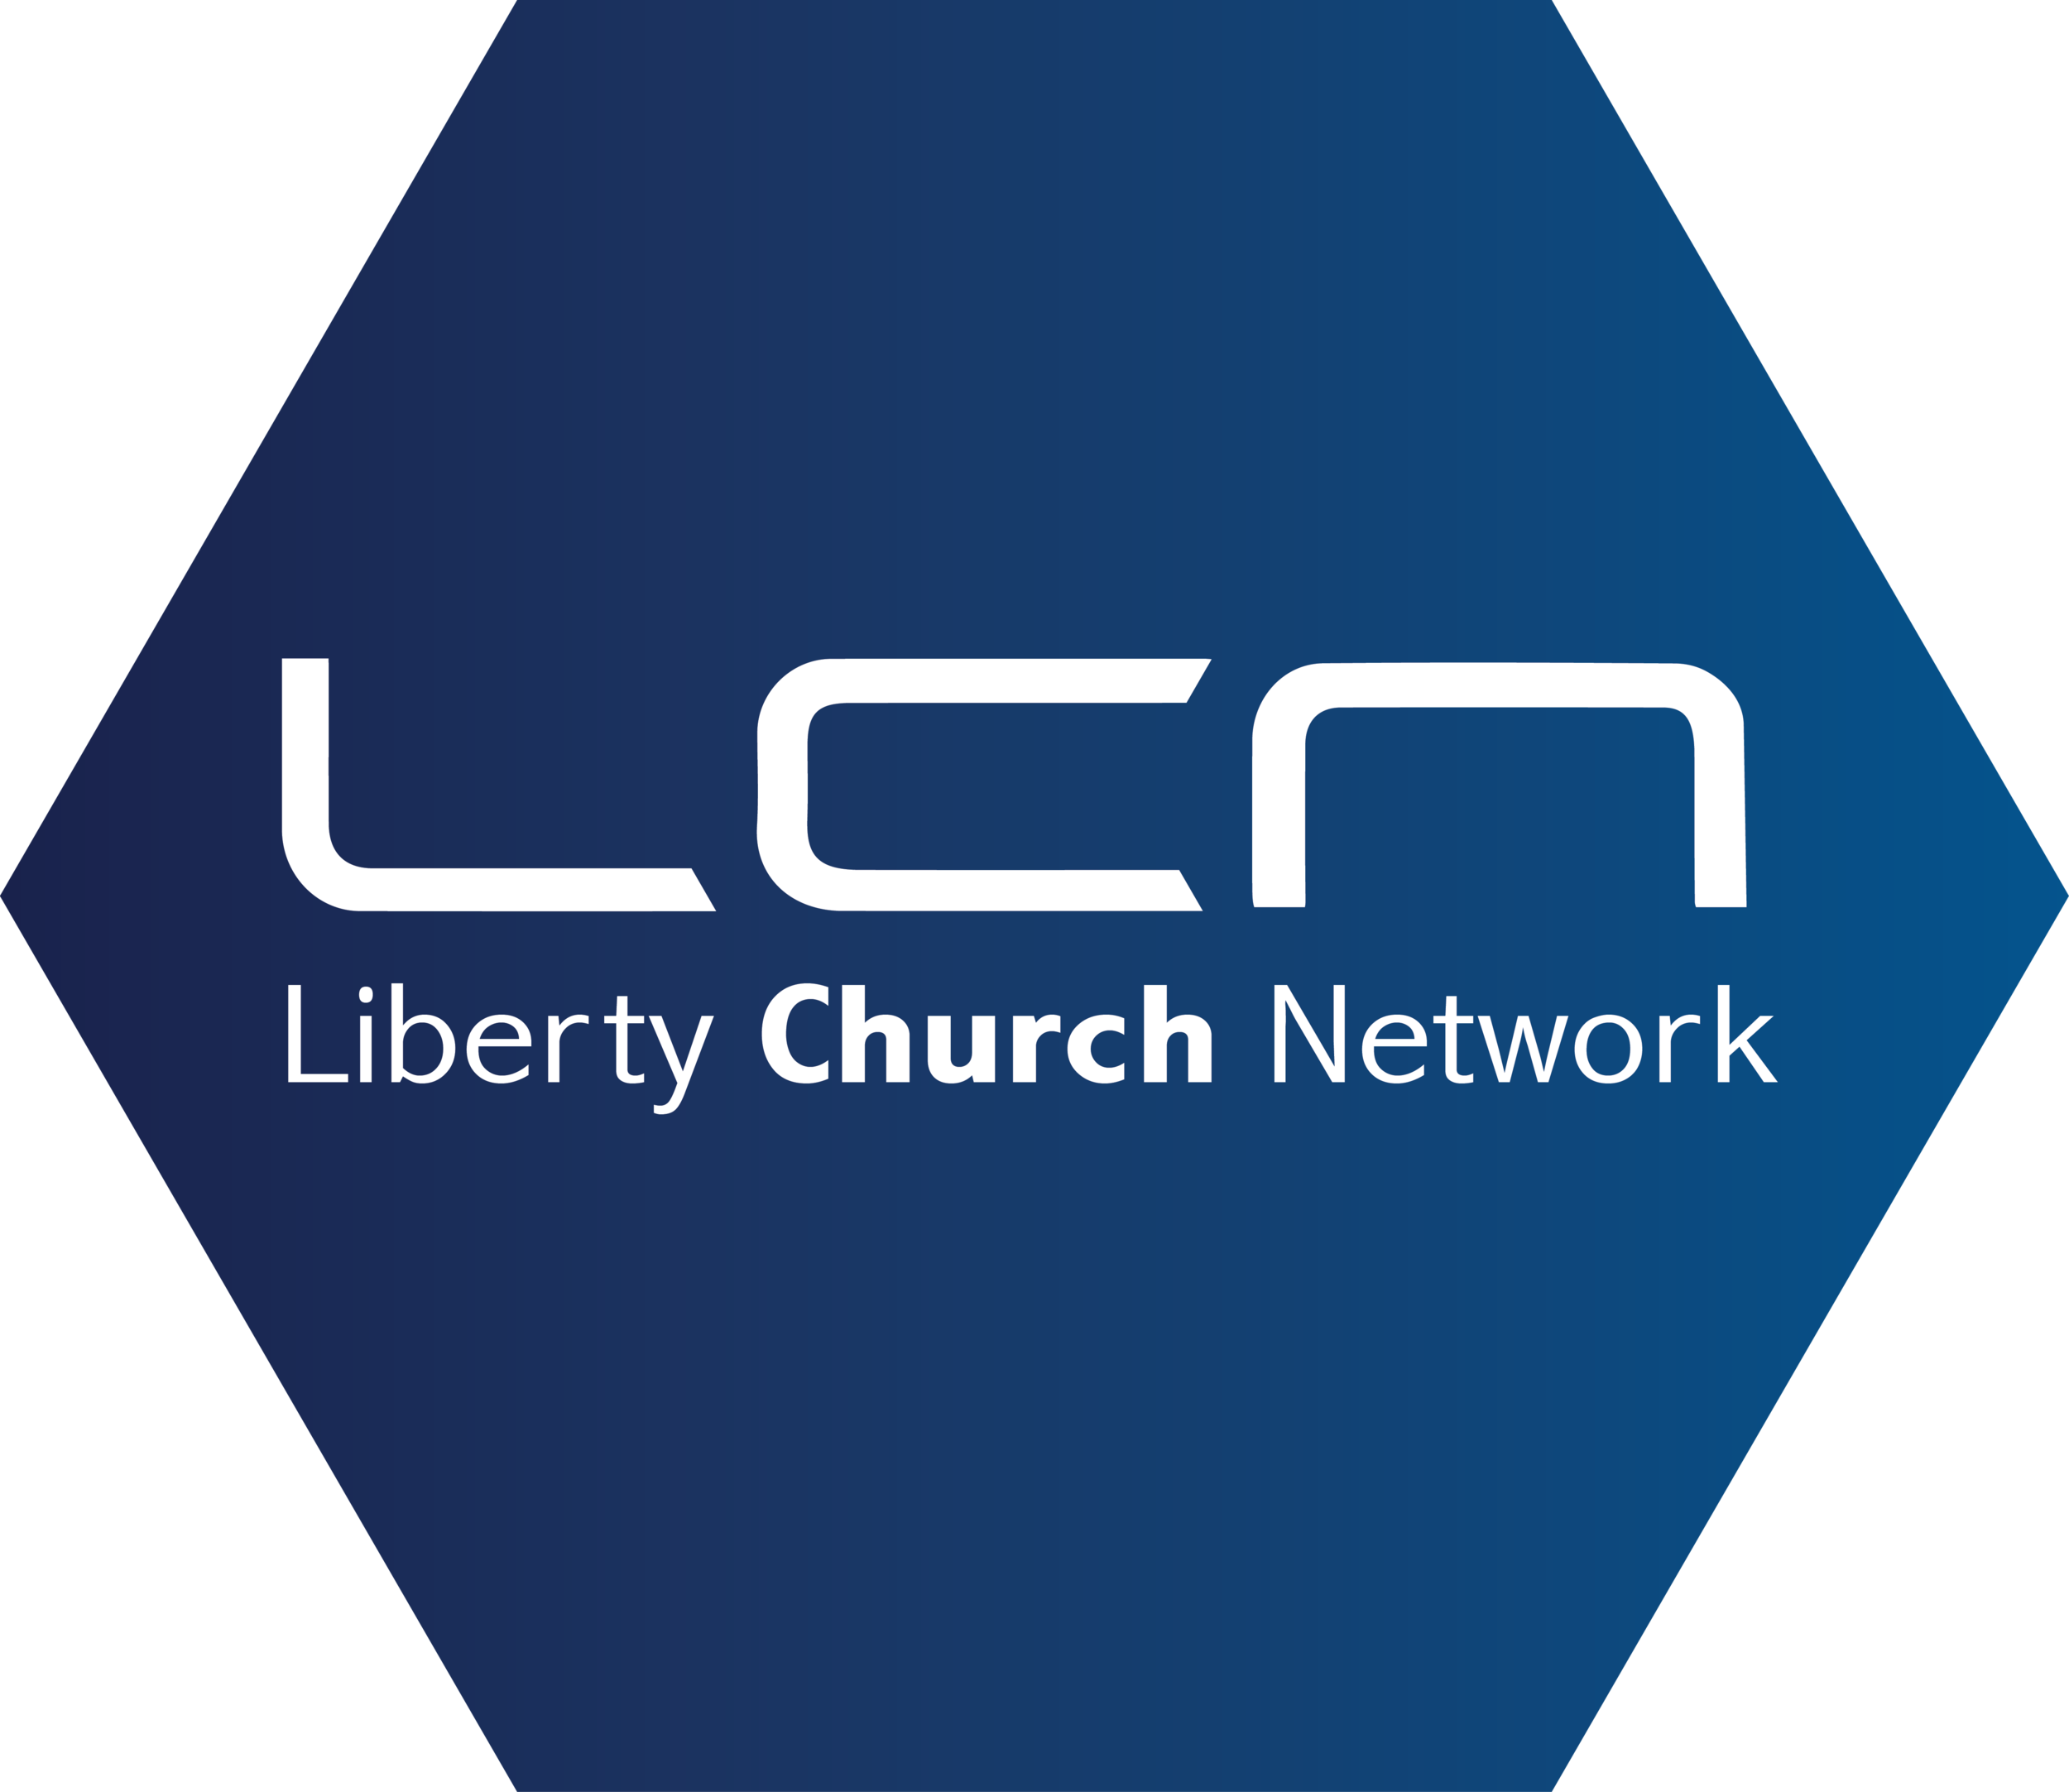 libertychurchnetwork.png